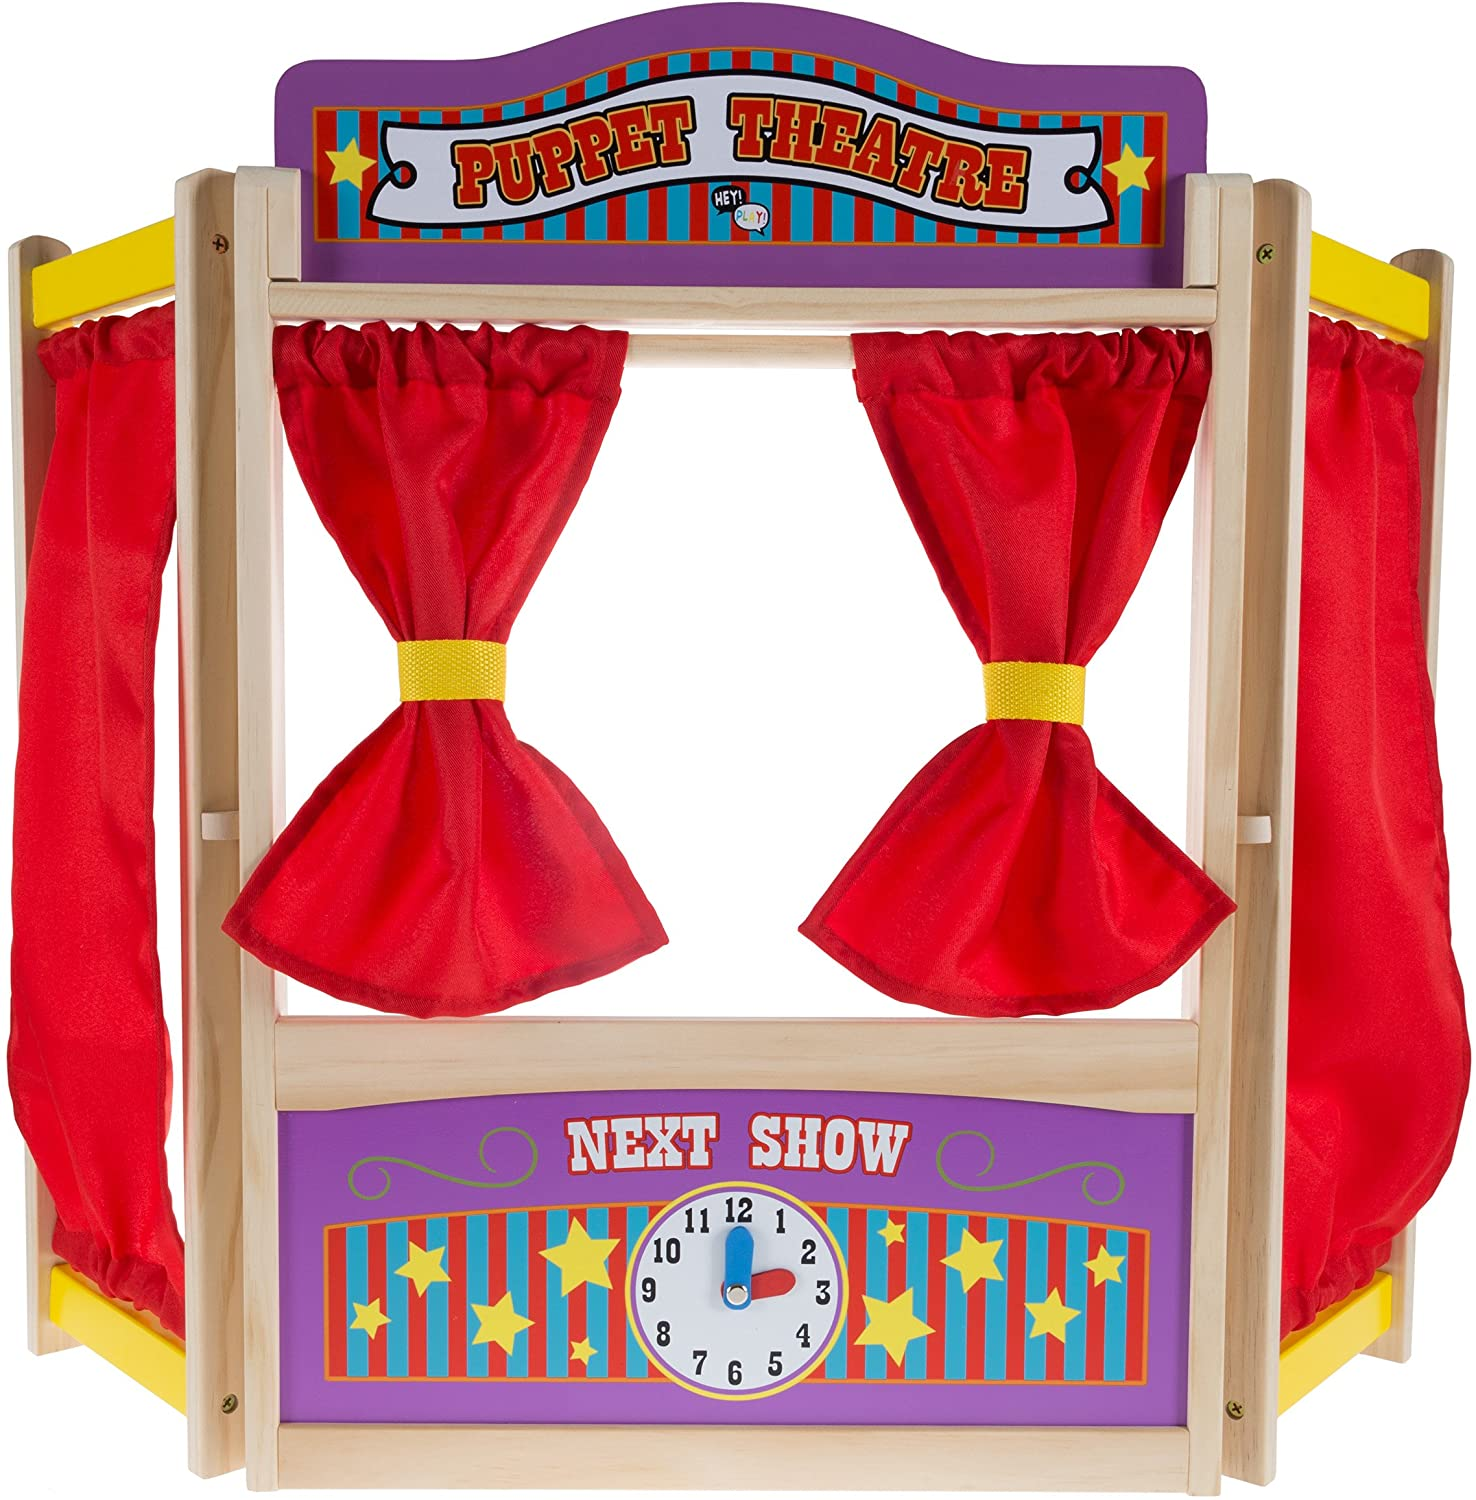 Hey! Play! Wooden Tabletop Puppet Theater with Curtains, Blackboard, and Clock- Inspires Imagination and Creativity for Kids, Boys and Girls, Multicolor (80-HCH212)